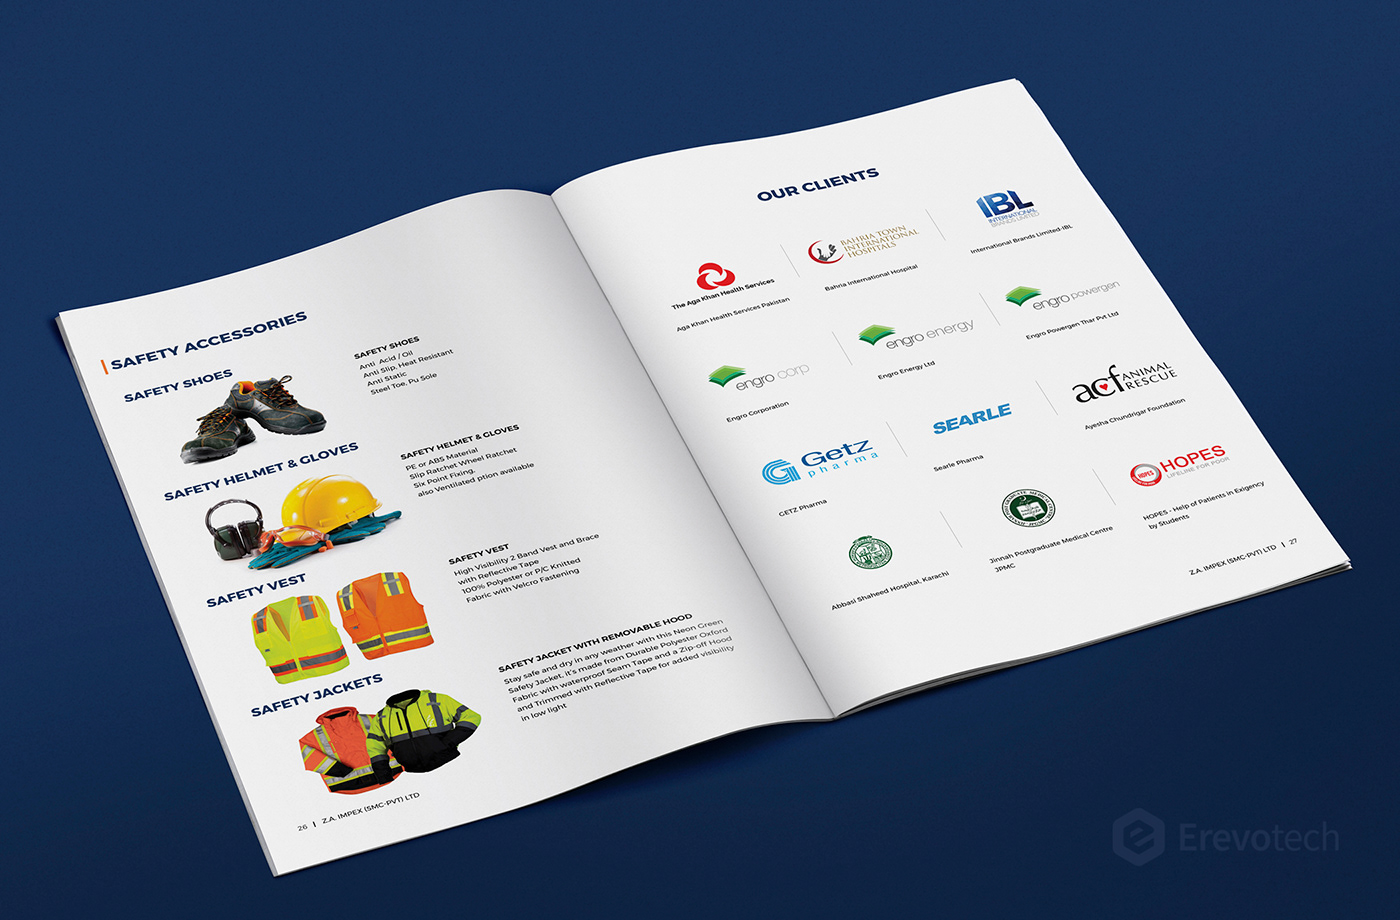 safety accessories catalogue design